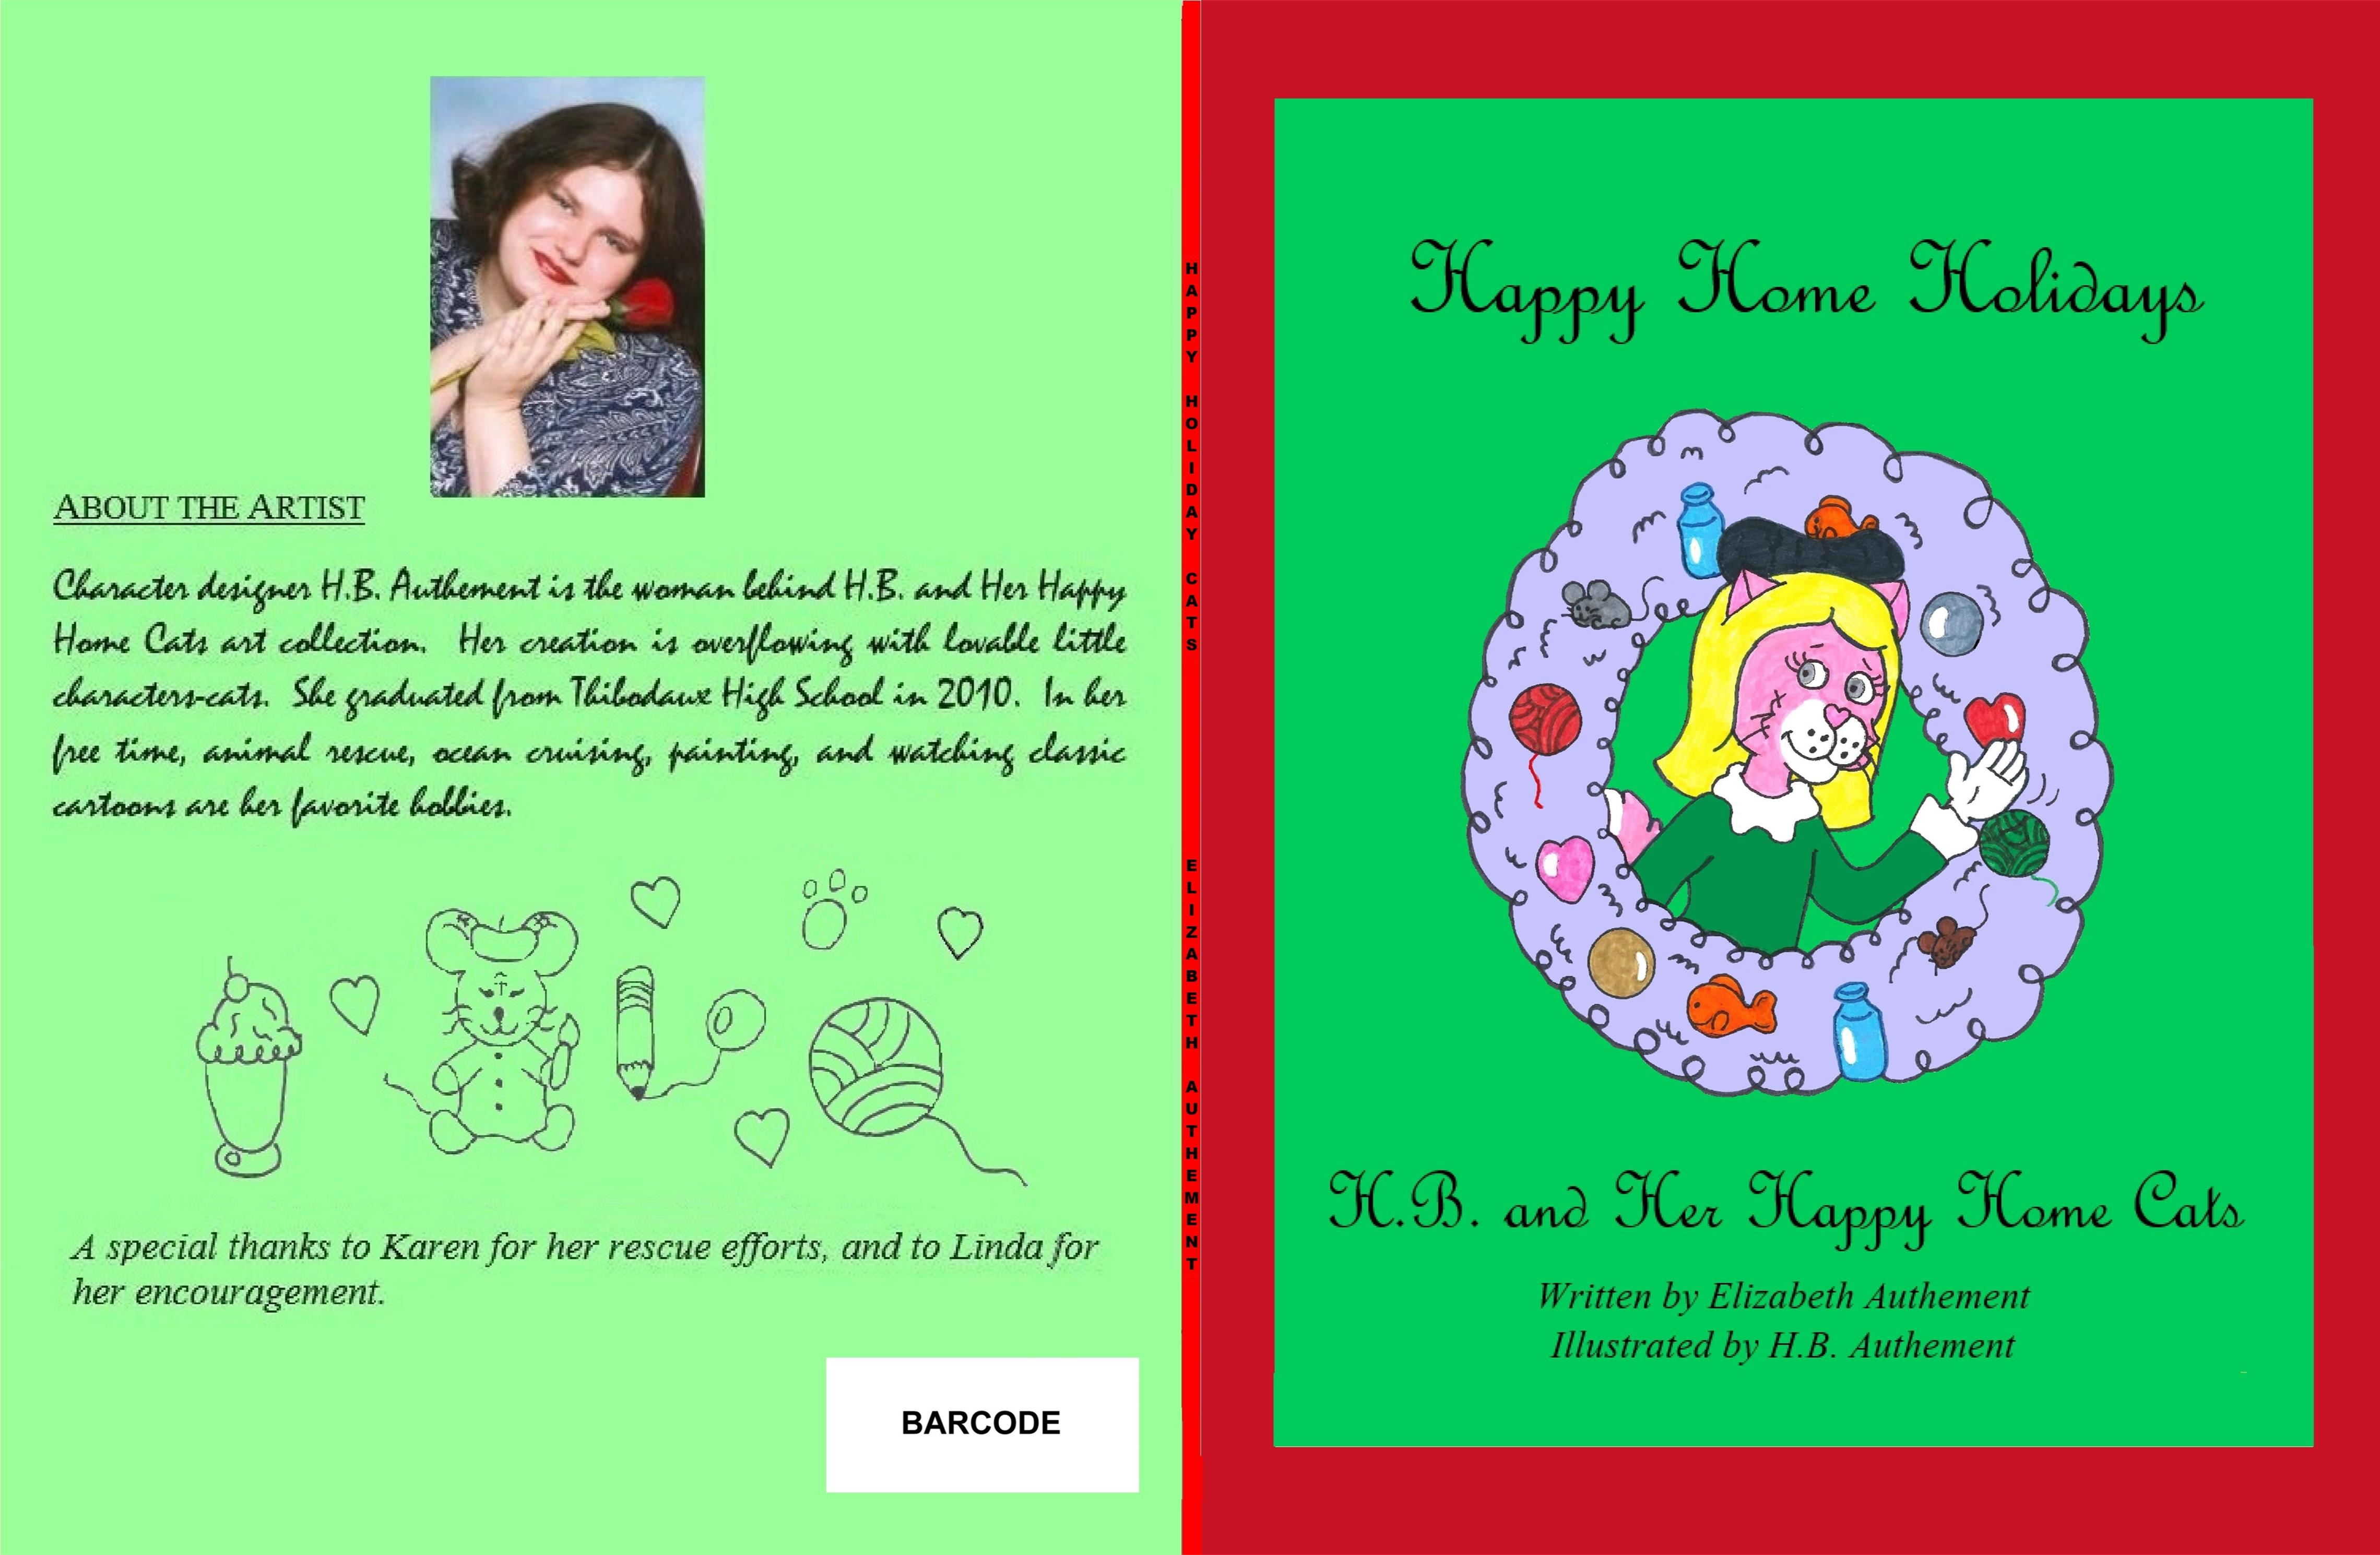 Happy Home Holidays cover image